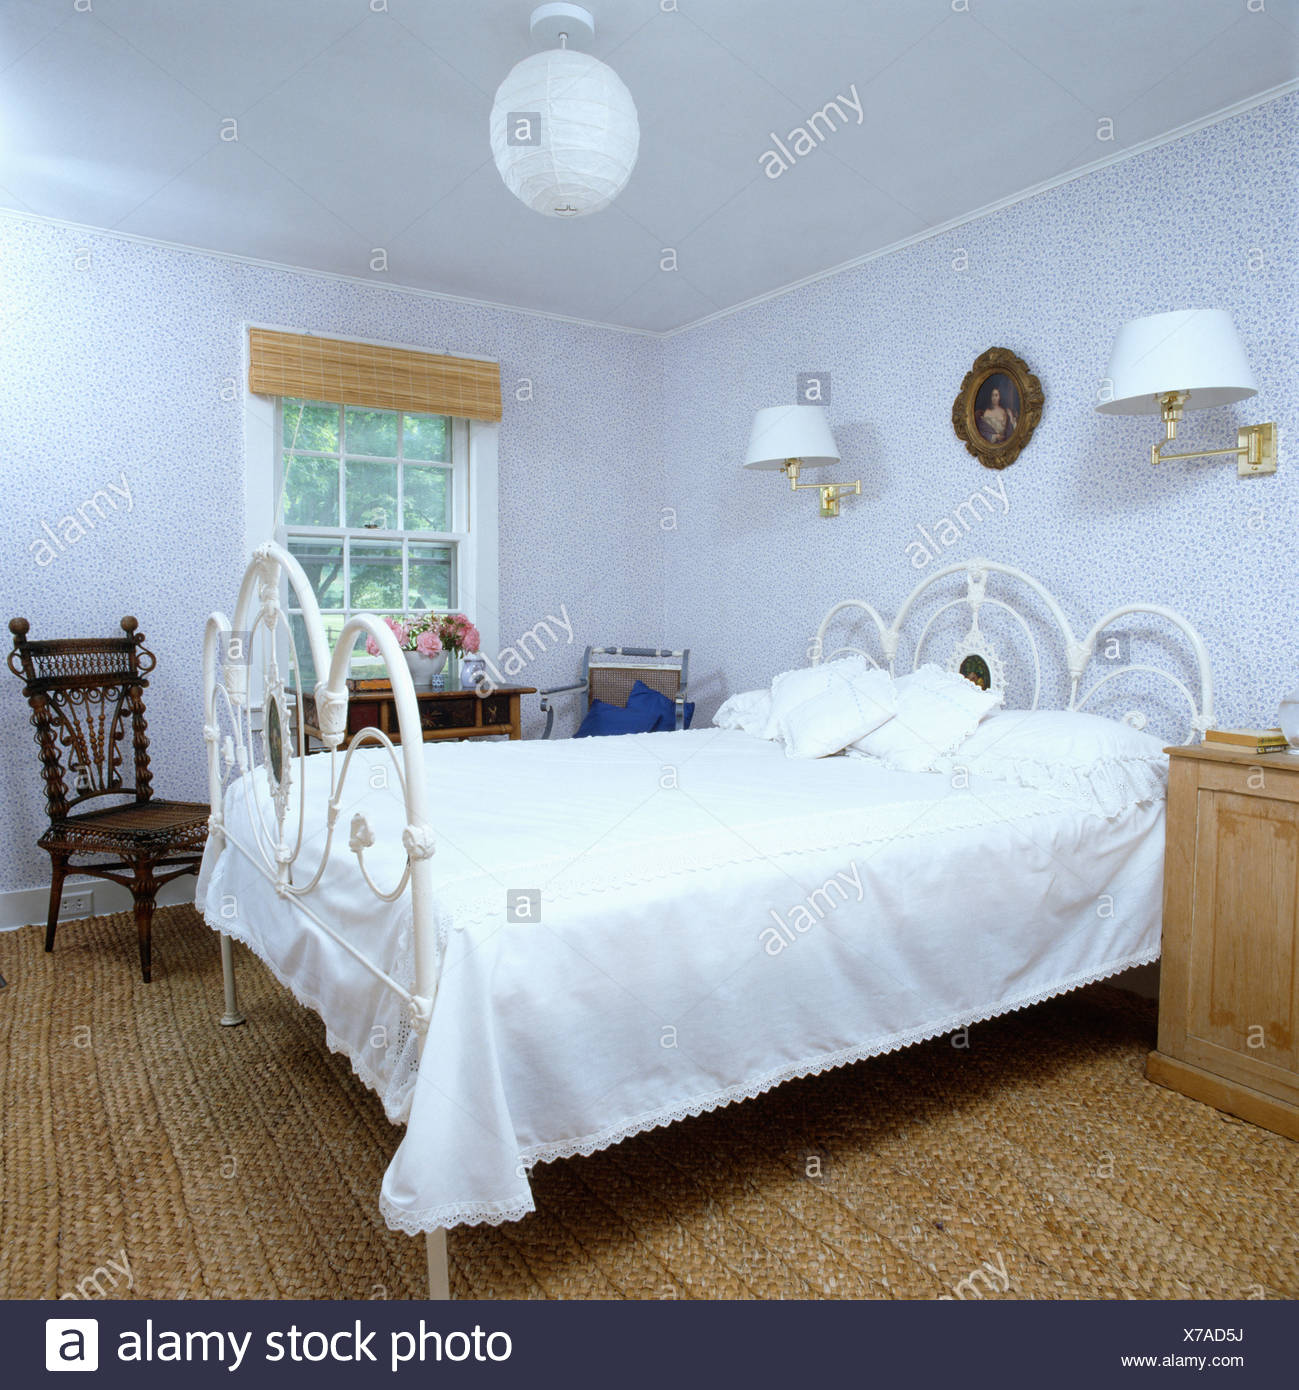 White wrought-iron bed in white country bedroom with seagrass carpet ...